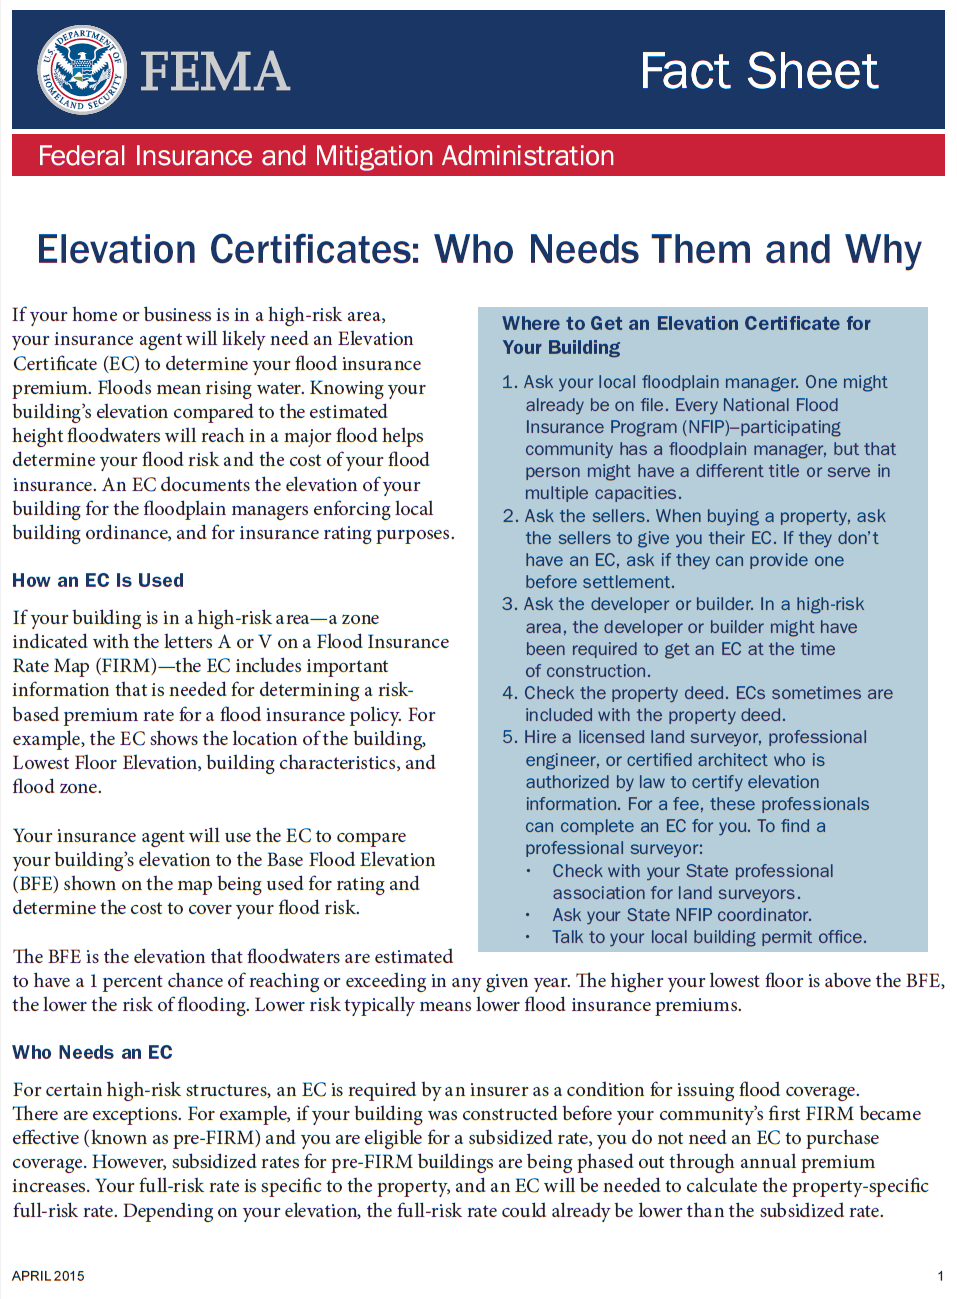 What Is An Elevation Certificate And Do You Need One? - Midland ...